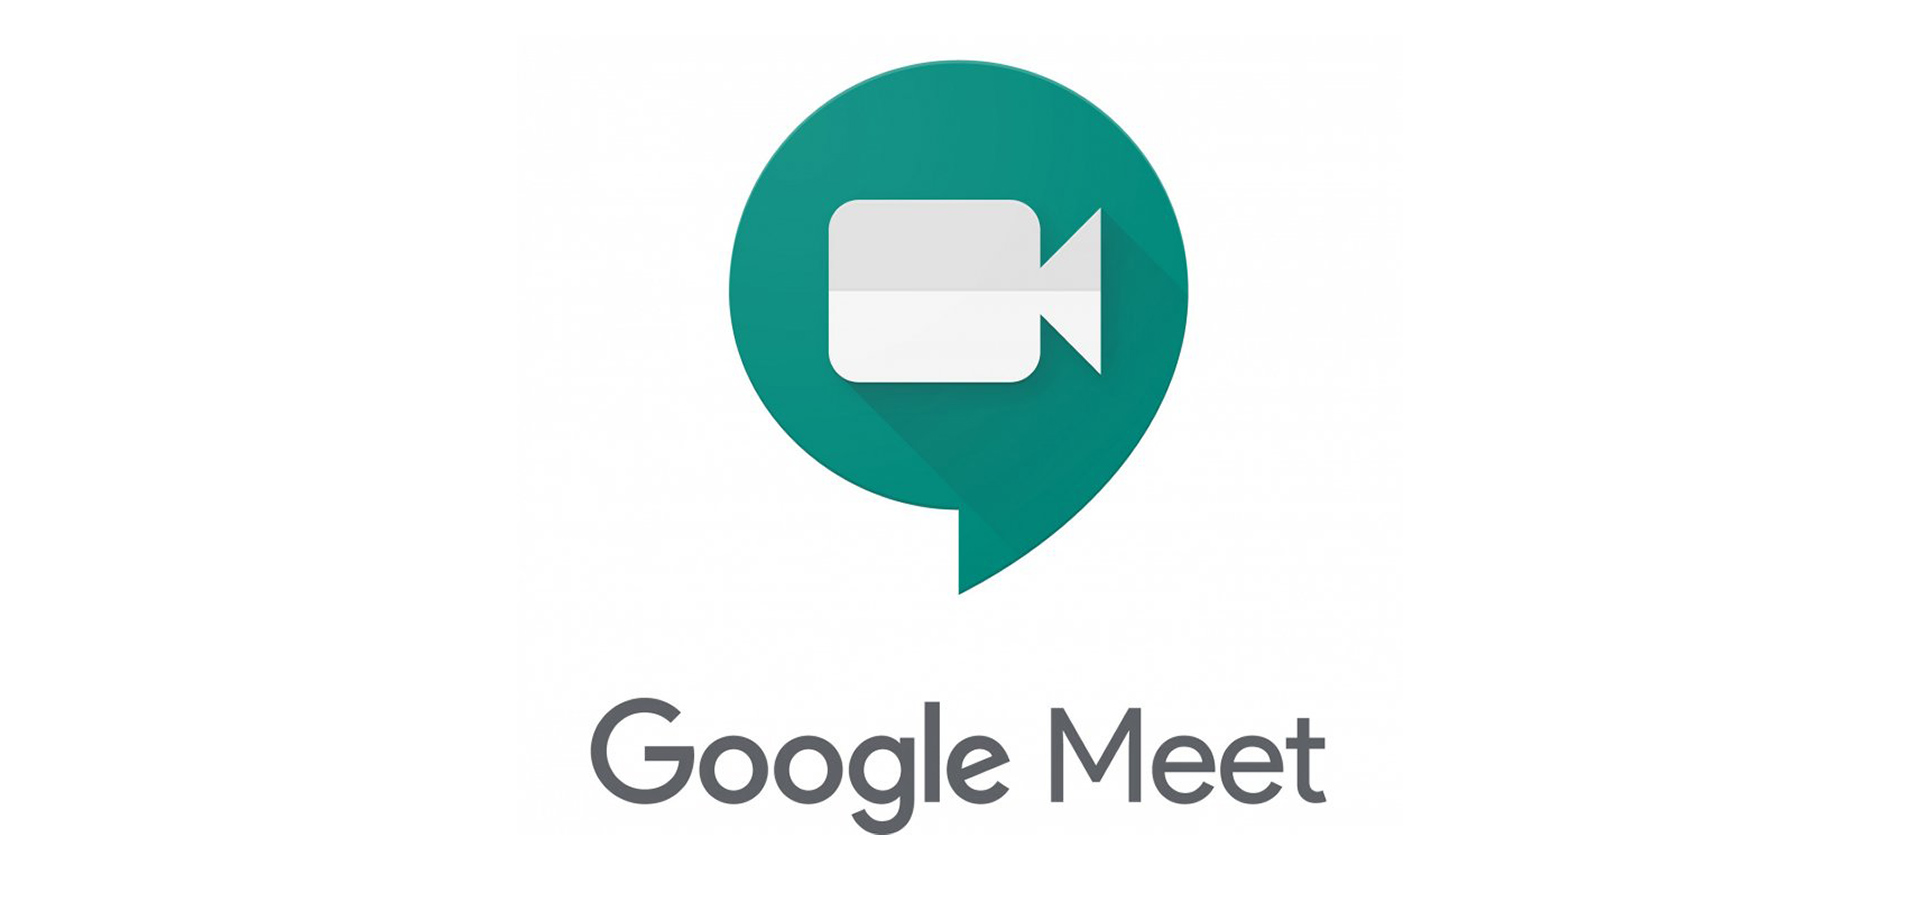 How to Set up a Google Meet Video Call - Dignited